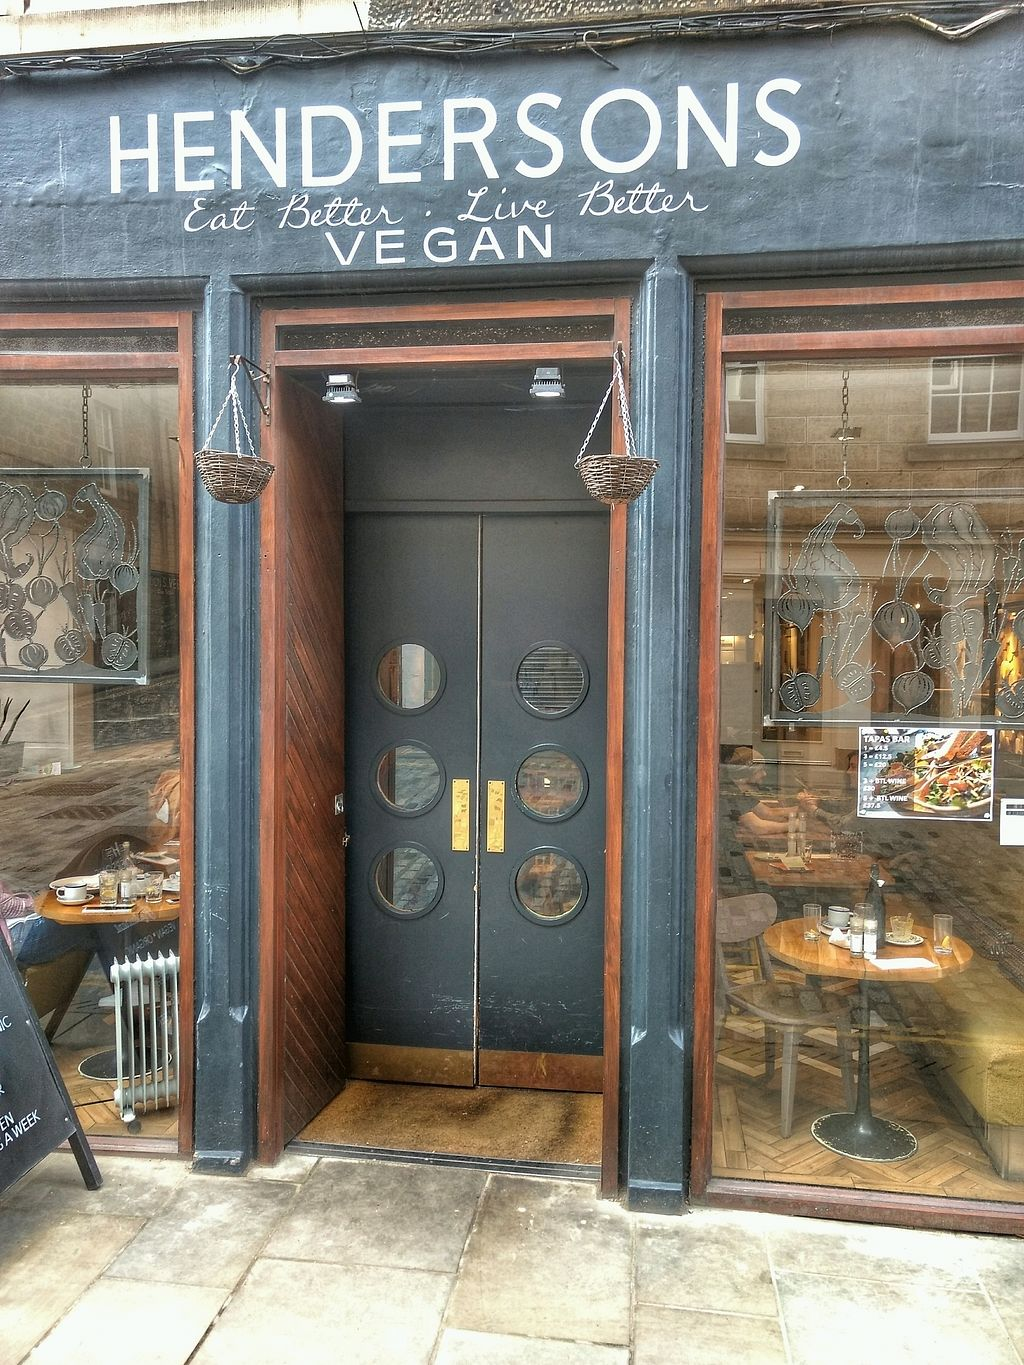 """Photo of Henderson's Vegan  by <a href=""""/members/profile/craigmc"""">craigmc</a> <br/>outside <br/> March 24, 2018  - <a href='/contact/abuse/image/59873/375399'>Report</a>"""